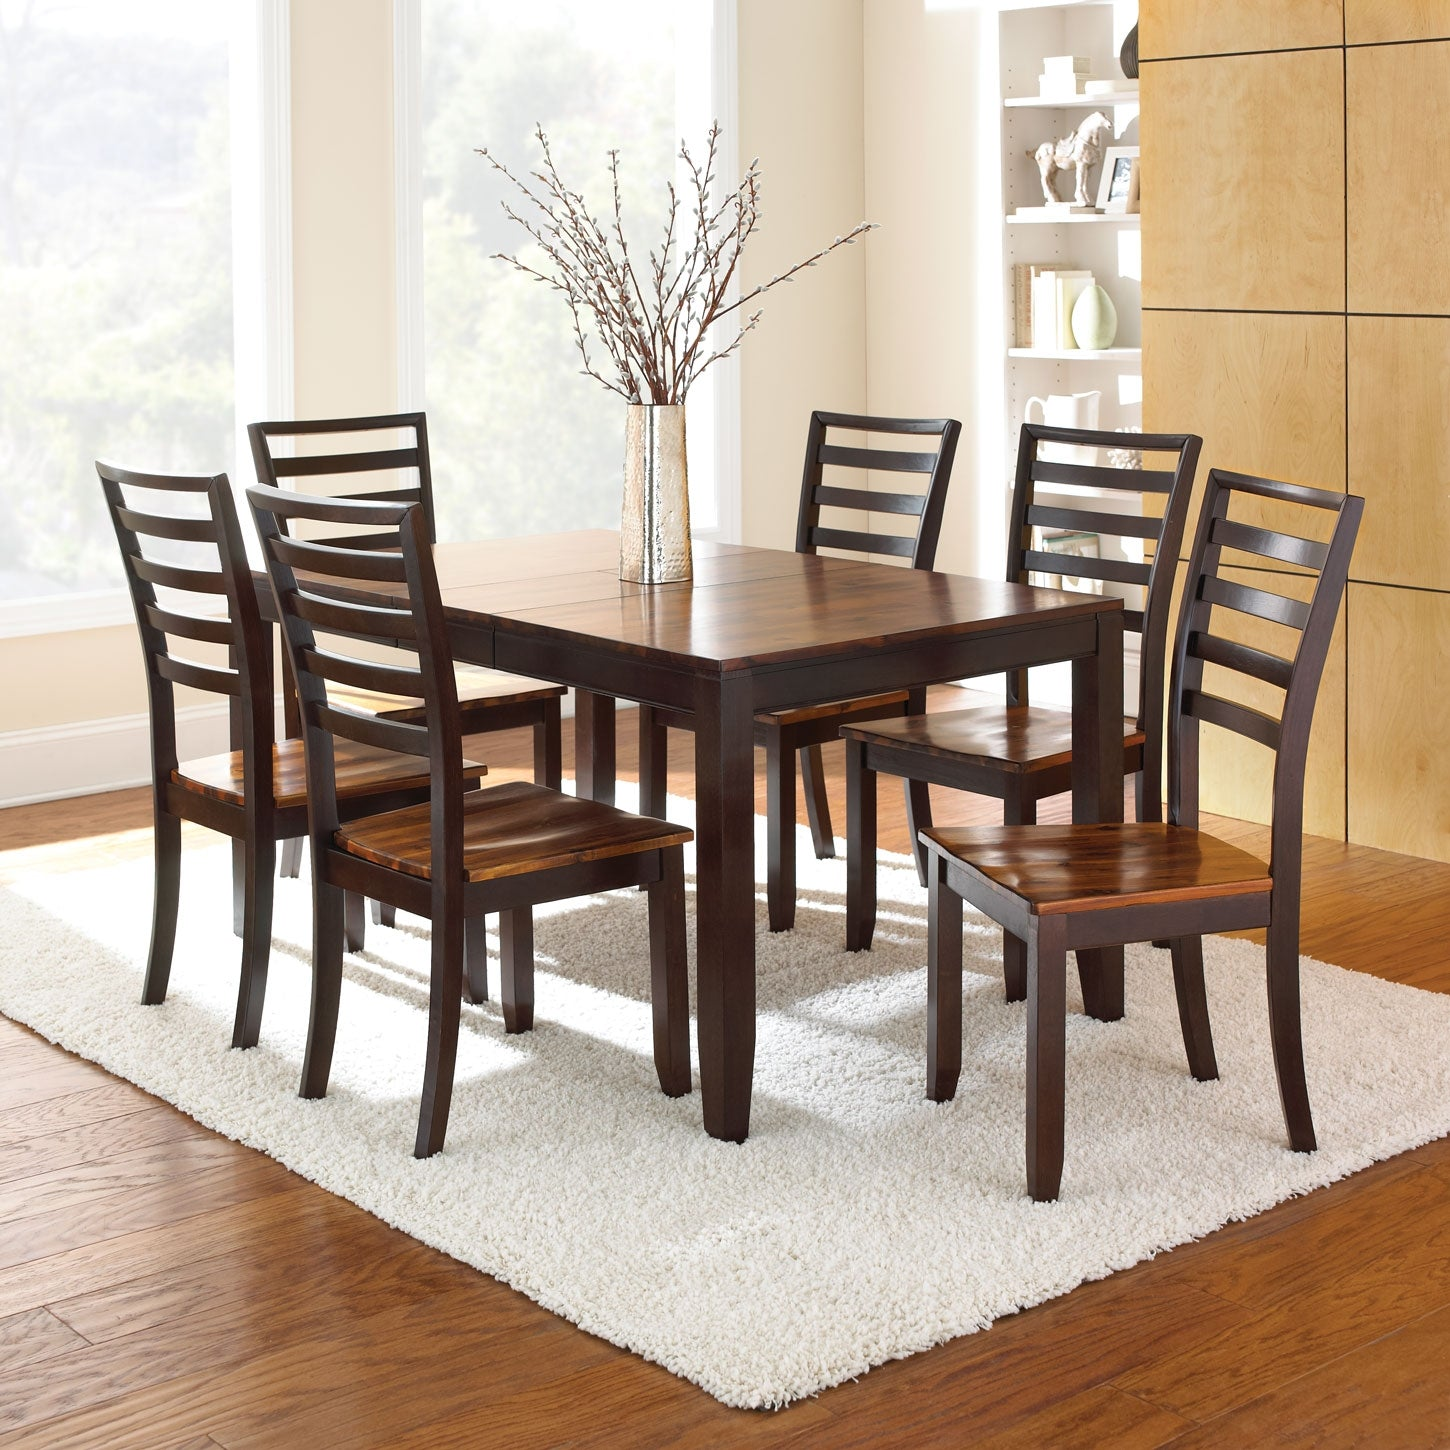 Cucina Letters Kitchen Decor, Weekly Or Monthly Abaco Standard Height Dining Table 6 Dining Chair Community Furnishings